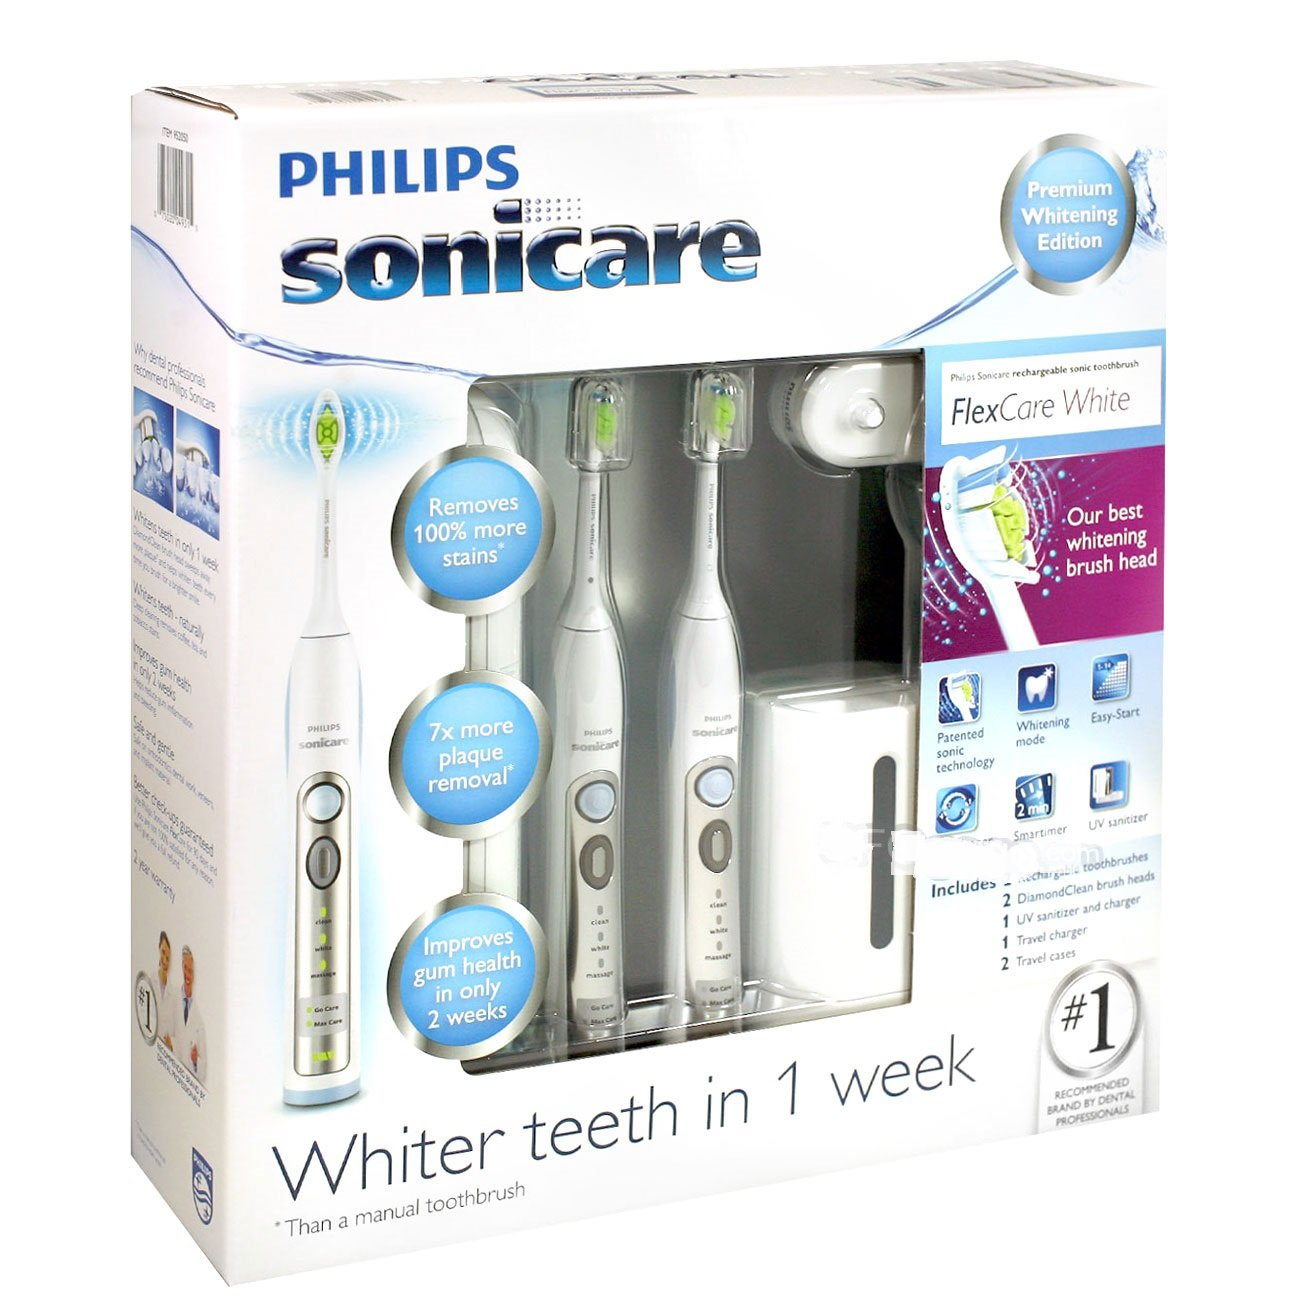 Philips Sonicare FlexCare White Premium Whitening Edition 2 Pack Bundle (2 FlexCare Whitening Edition Handles, 2 DiamondClean Brush Heads, 1 UV Sanitizer and Charger, 1 Compact Travel Charger, 2 Hygenic Travel Caps, 2 Hard Travel Cases) by Philips (Image #6)